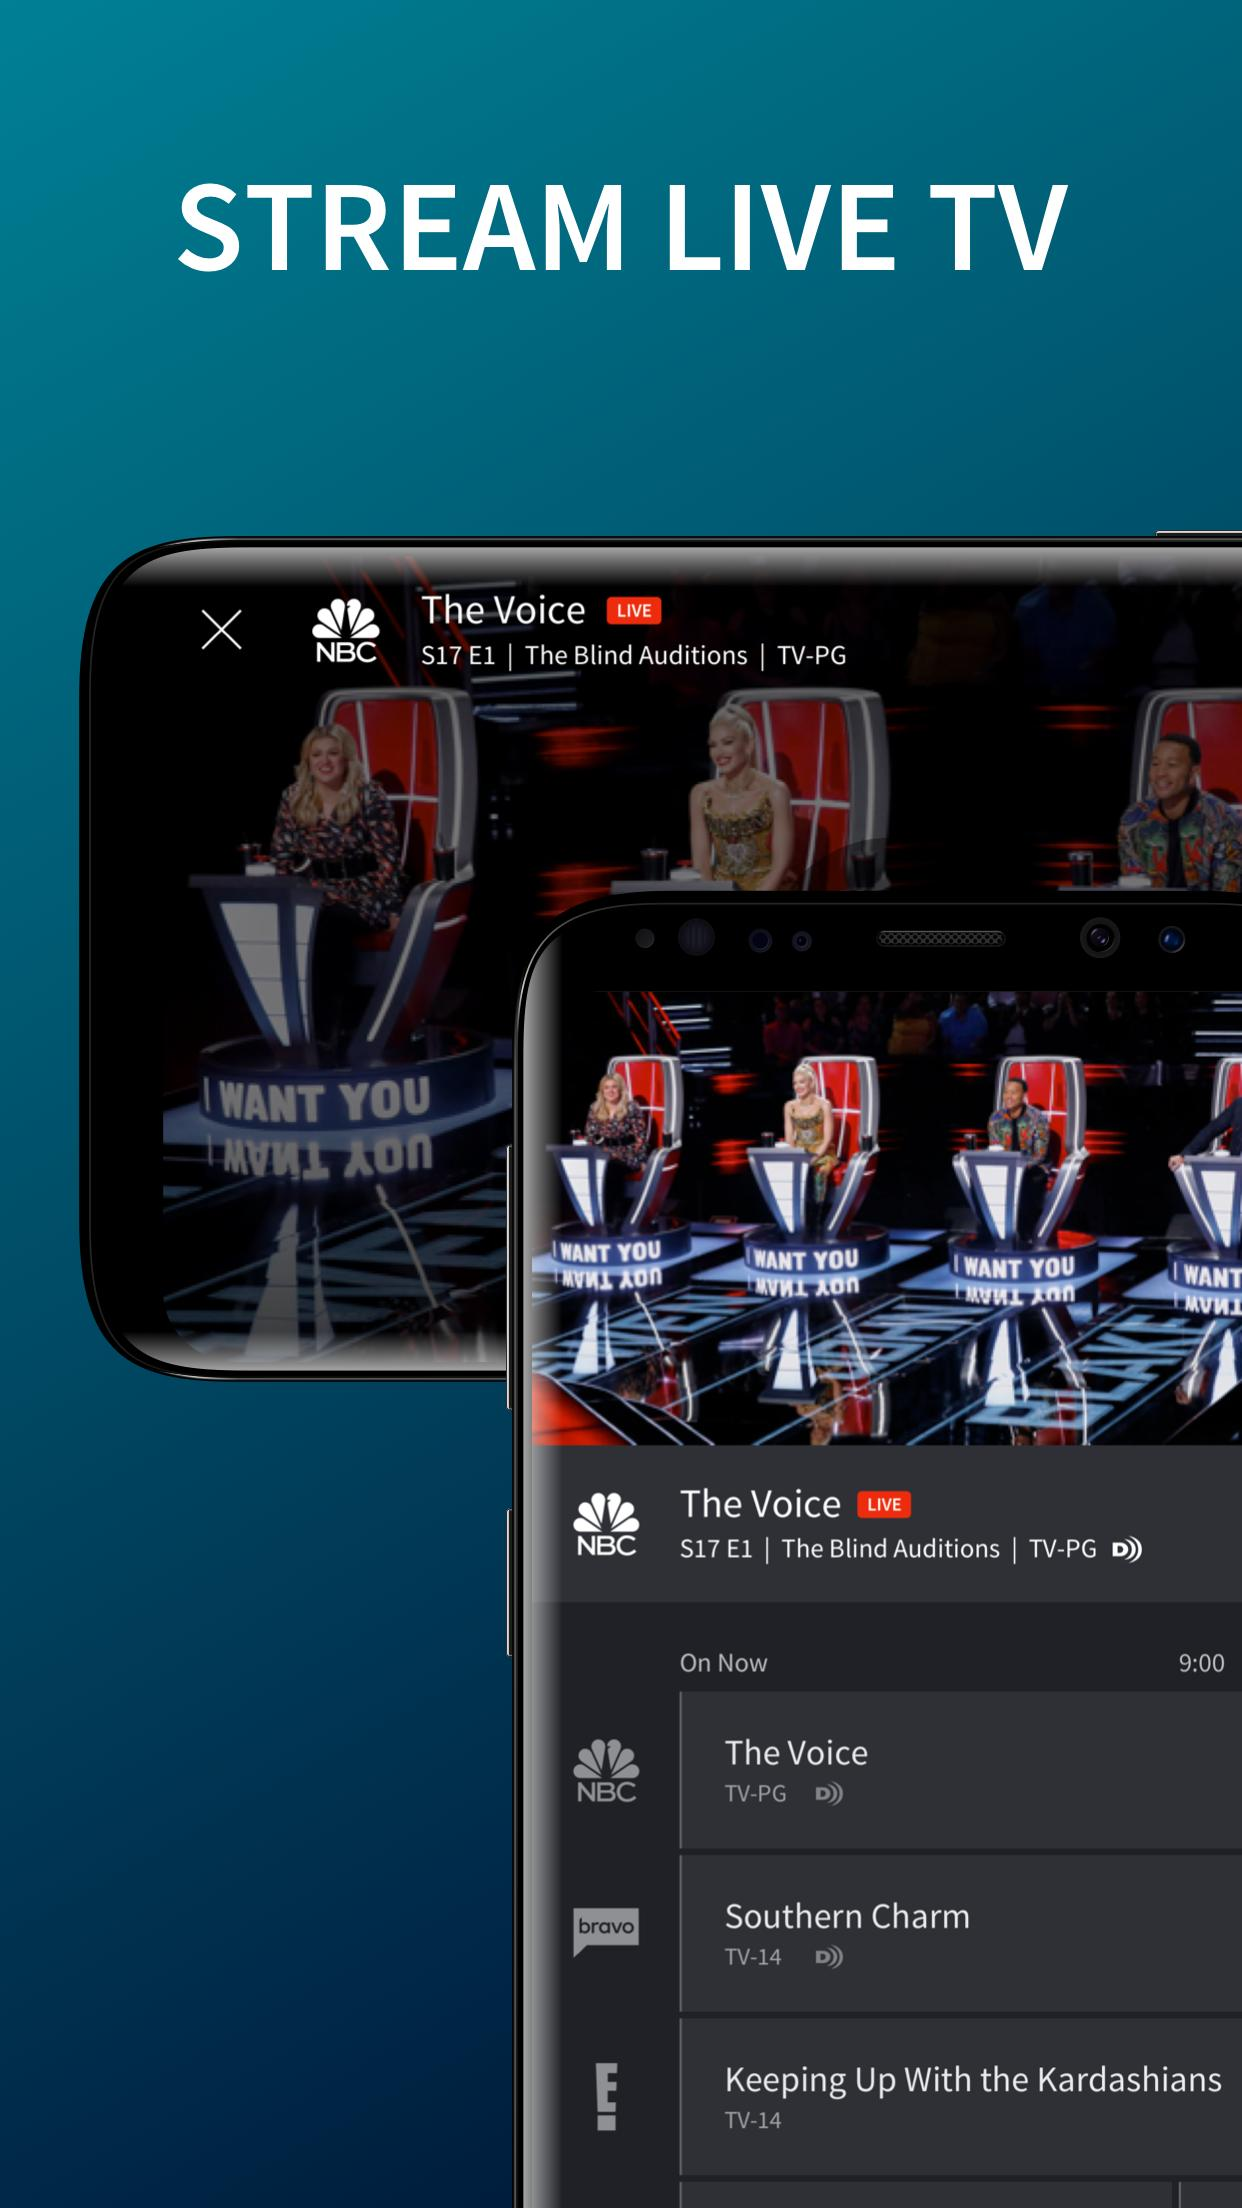 The NBC App - Stream Live TV and Episodes for Free 7.4.1 Screenshot 4